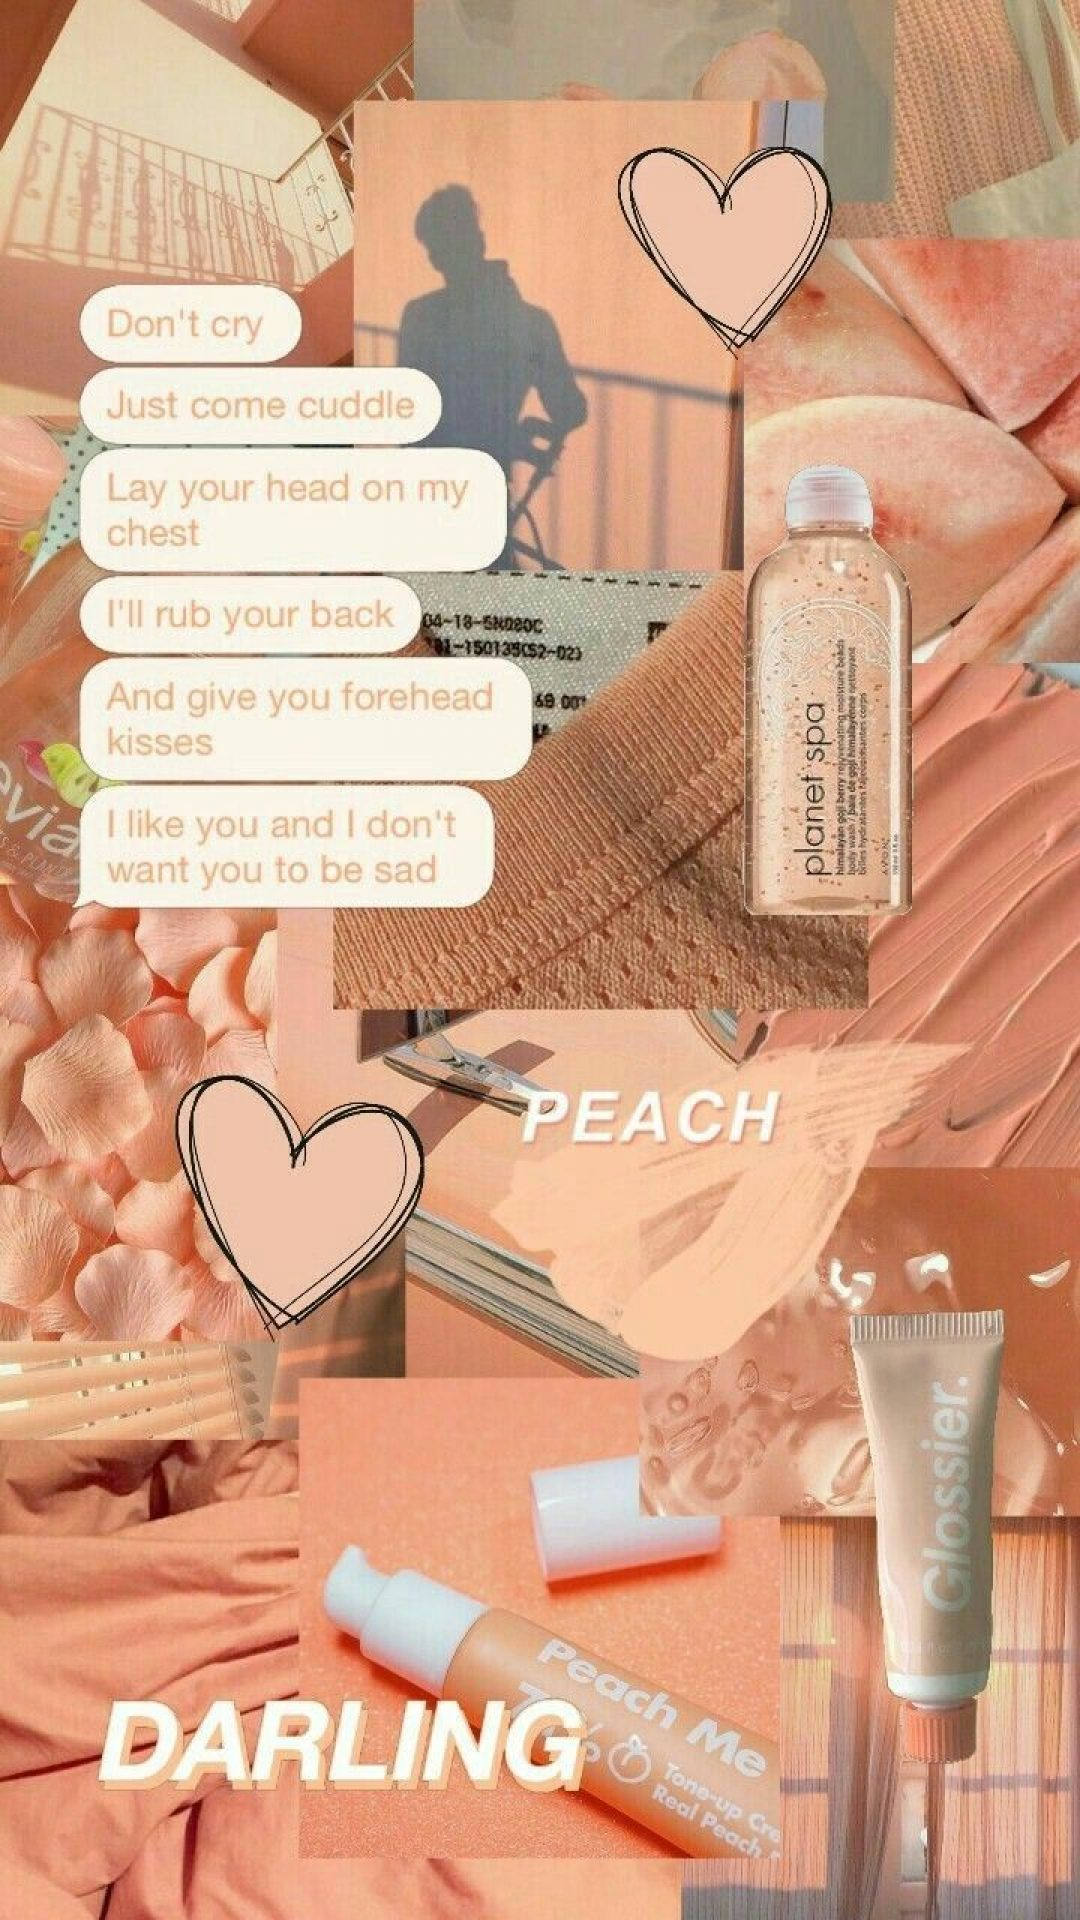 120 Peach Aesthetic Collage Hd Wallpaper Background Android Iphone Hd Wallpaper Background Download Png Jpg 2021